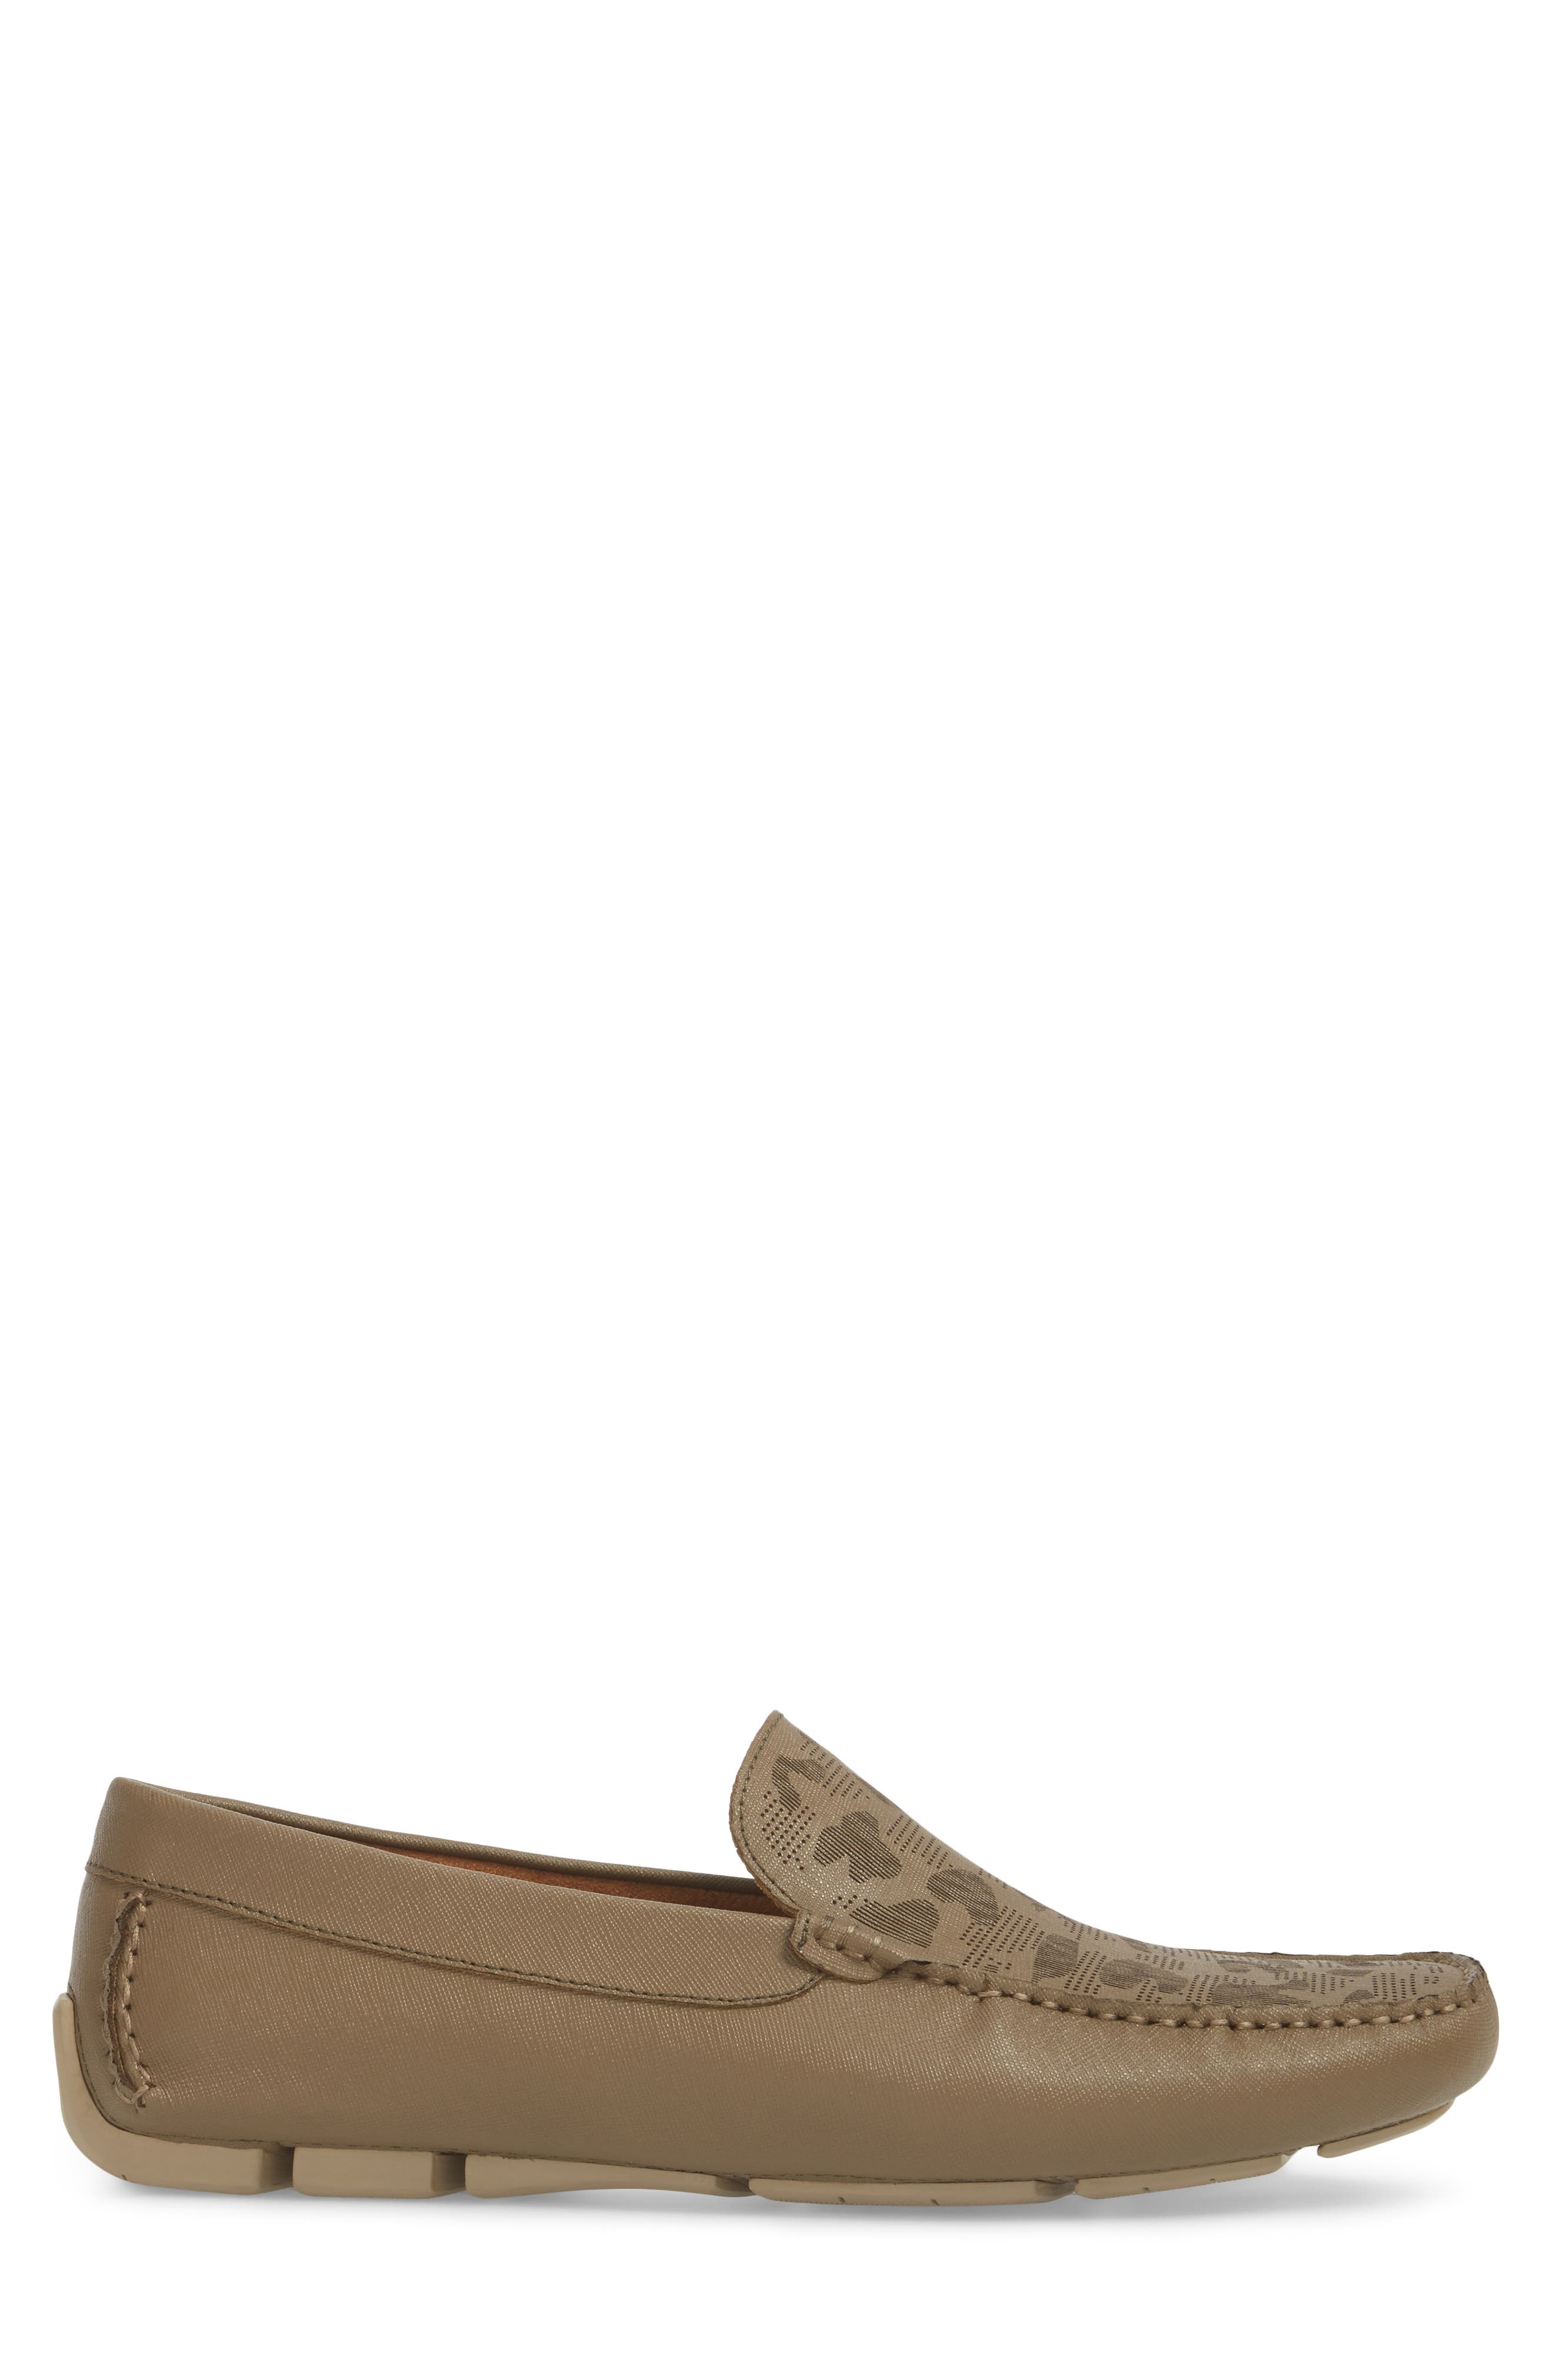 Theme Song Driving Shoe,                             Alternate thumbnail 3, color,                             Taupe Leather